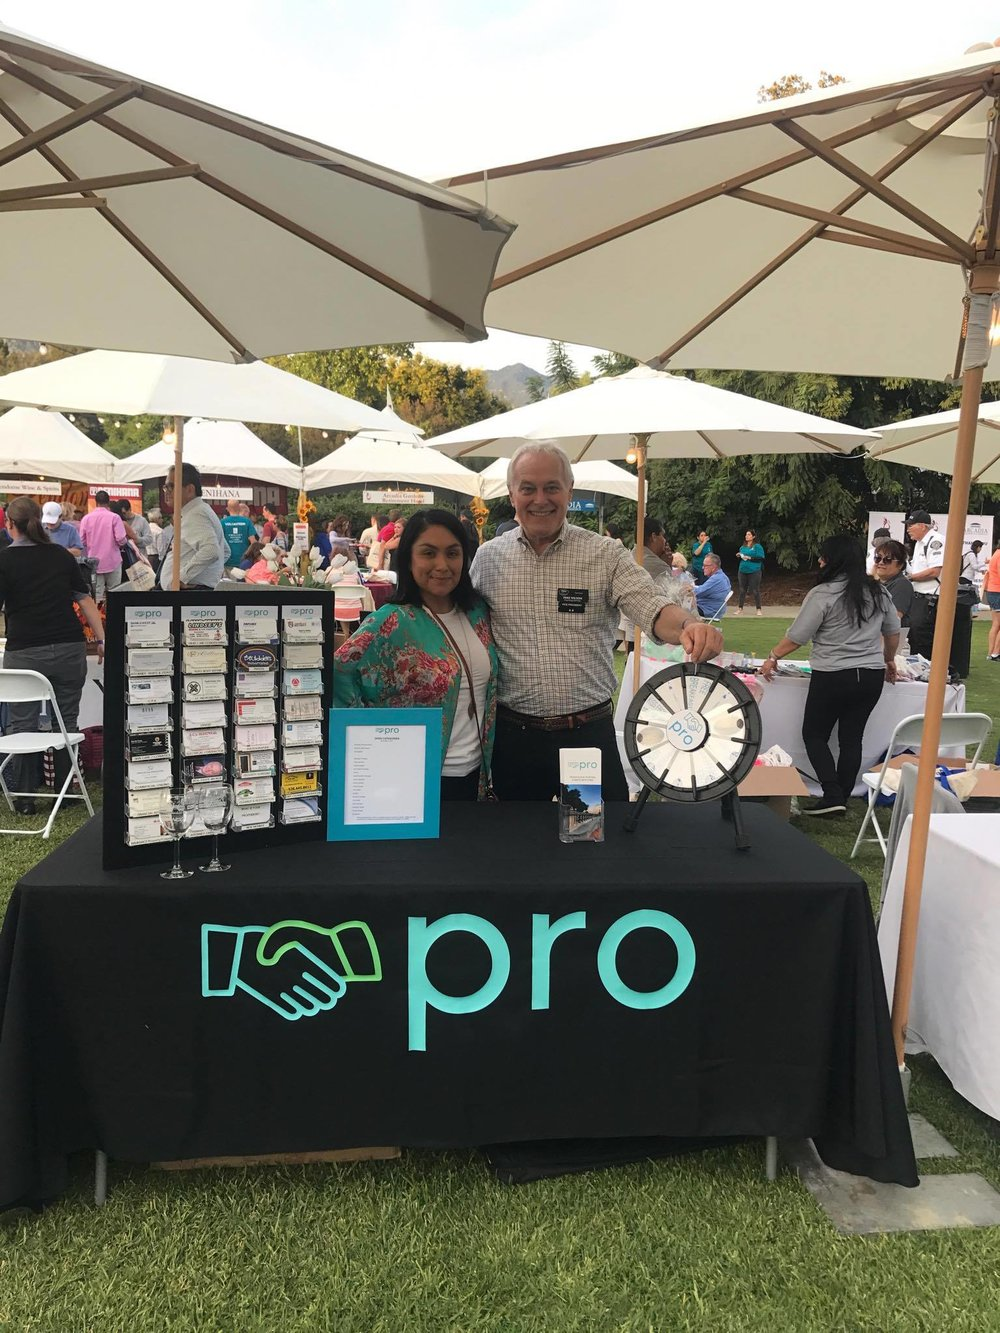 Our events coordinator Irene and VP Mike manning the Pro booth at Taste of Arcadia 2017